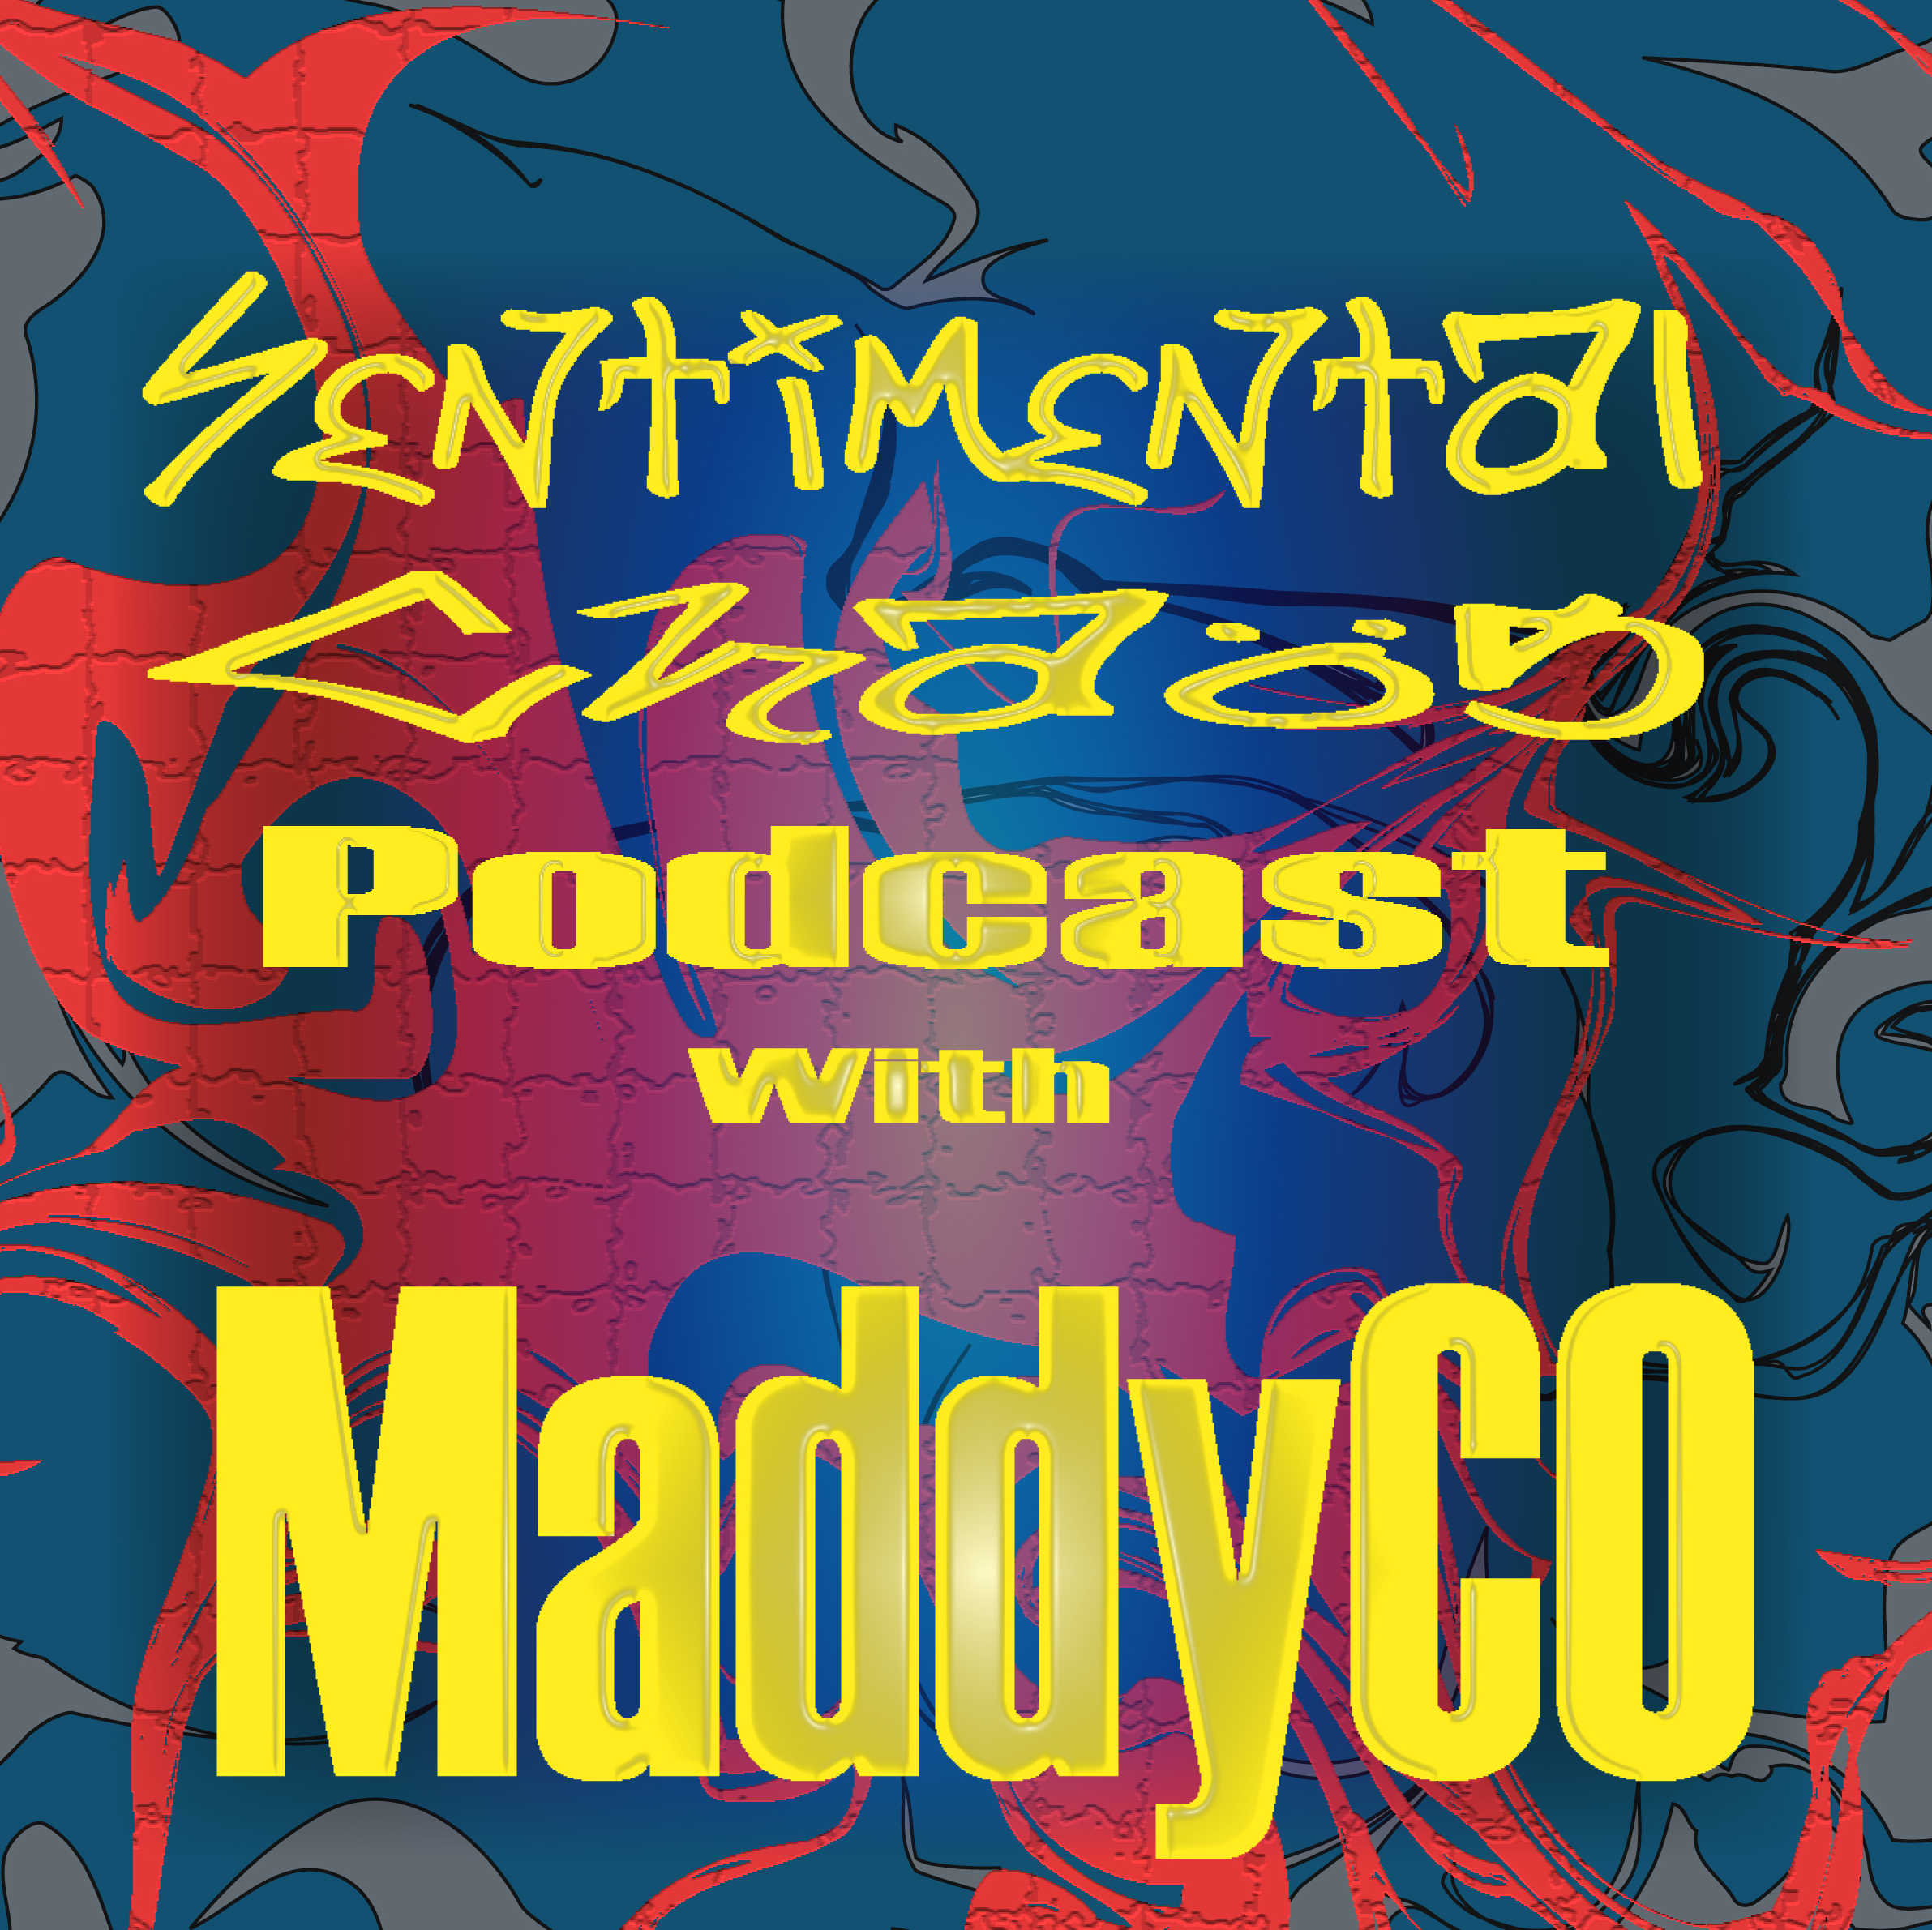 Sentimental Chaos Podcast